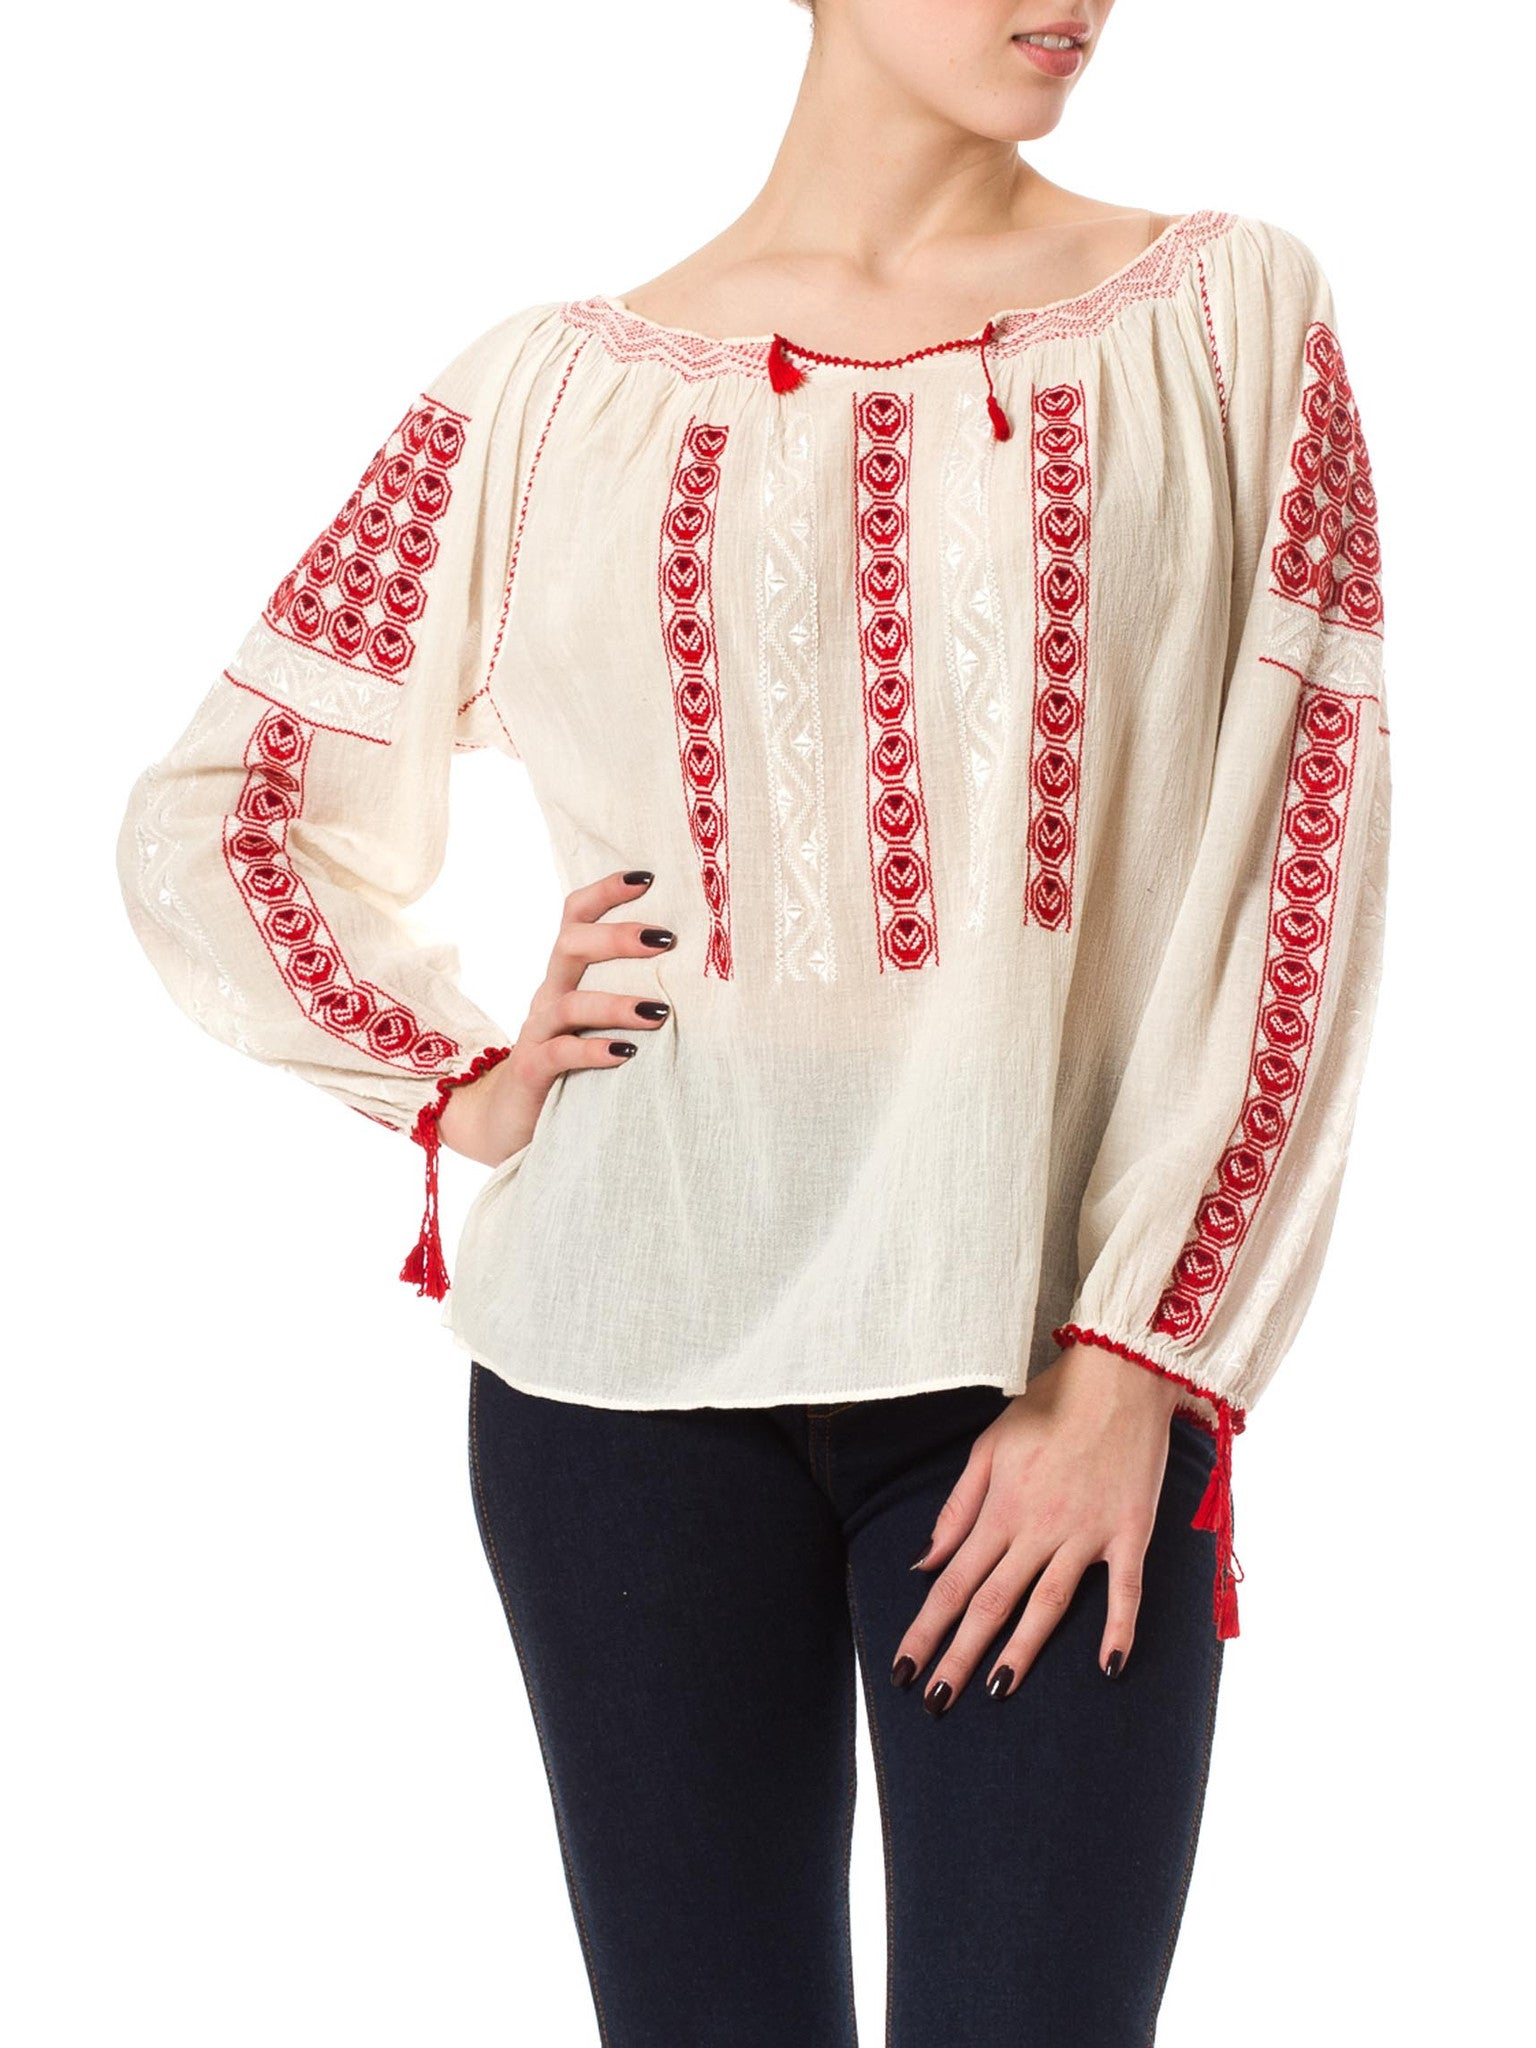 1970's Vintage Cotton Peasant Red Embroidered Blouse